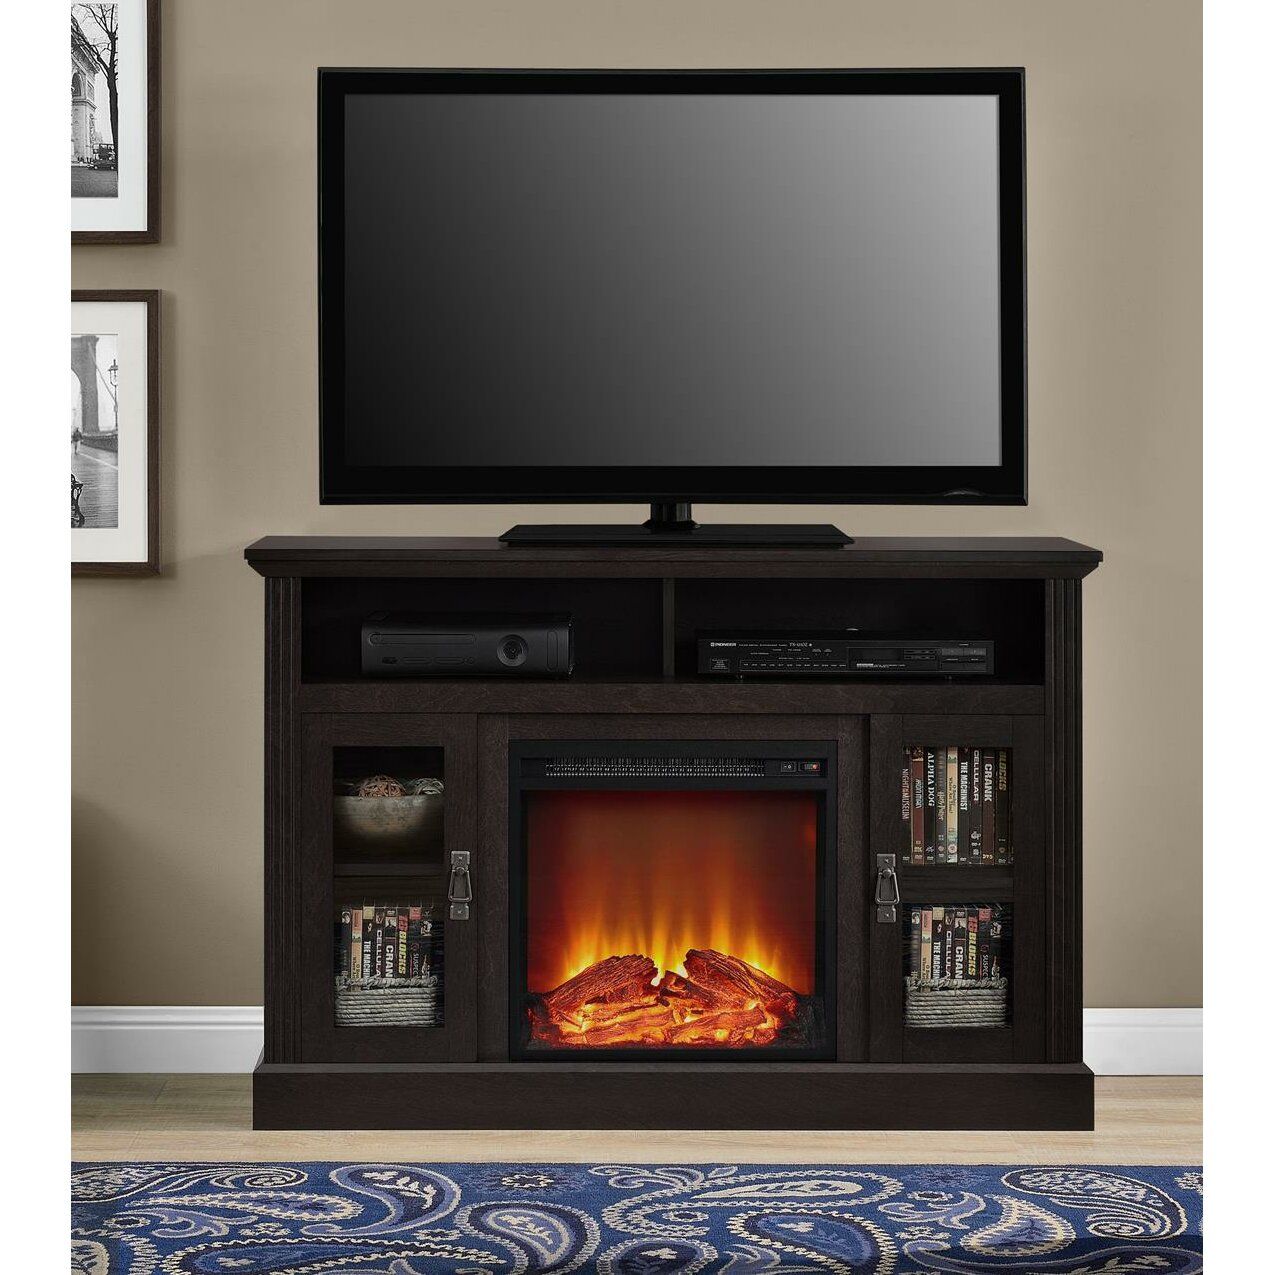 Darby Home Co Cristemas Tv Stand With Electric Fireplace Reviews Wayfair